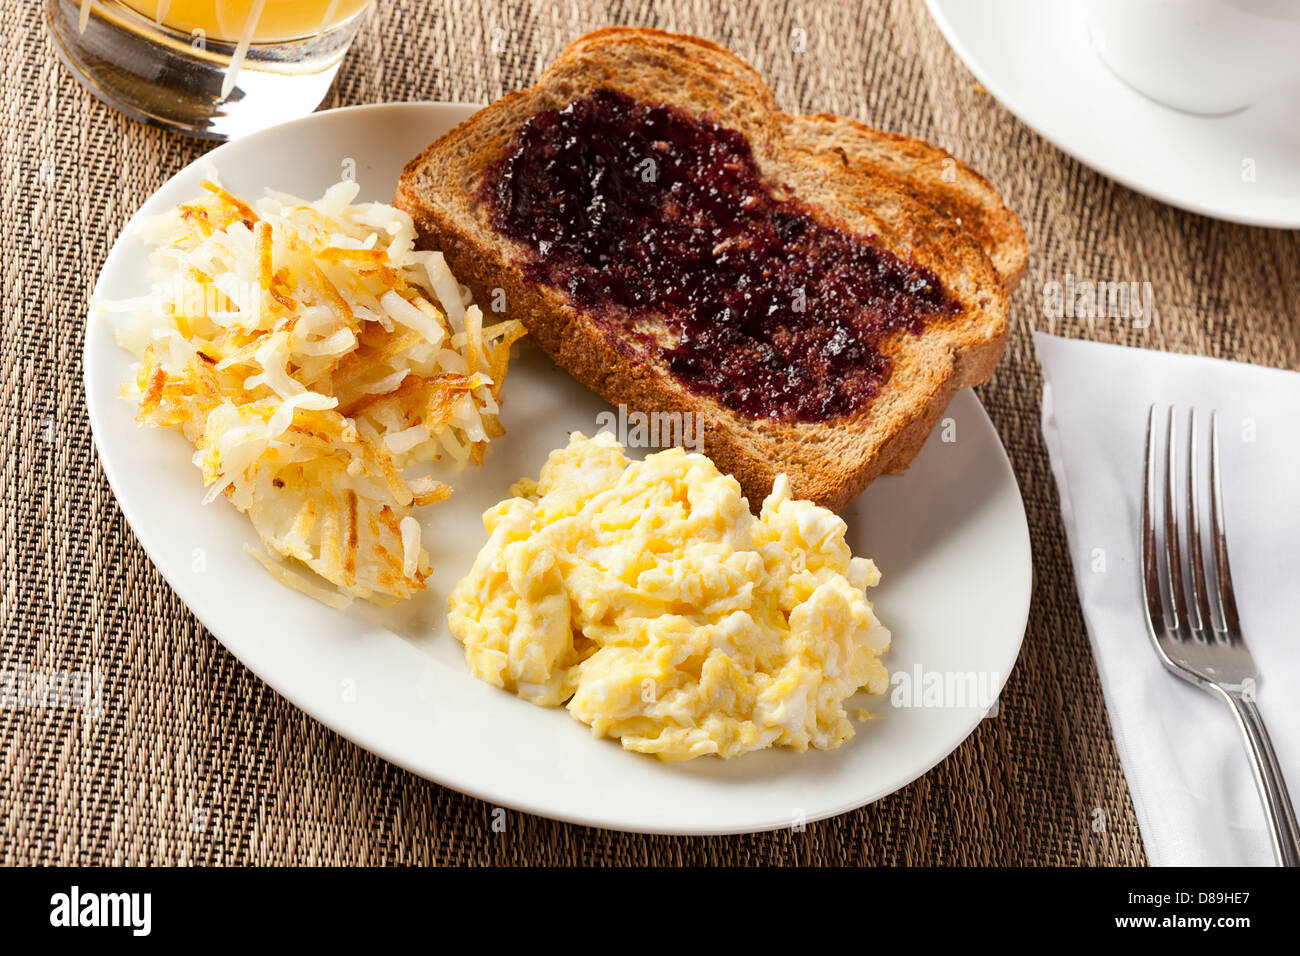 Homemade Wholesome American Breakfast with eggs, toast, and hashbrowns - Stock Image